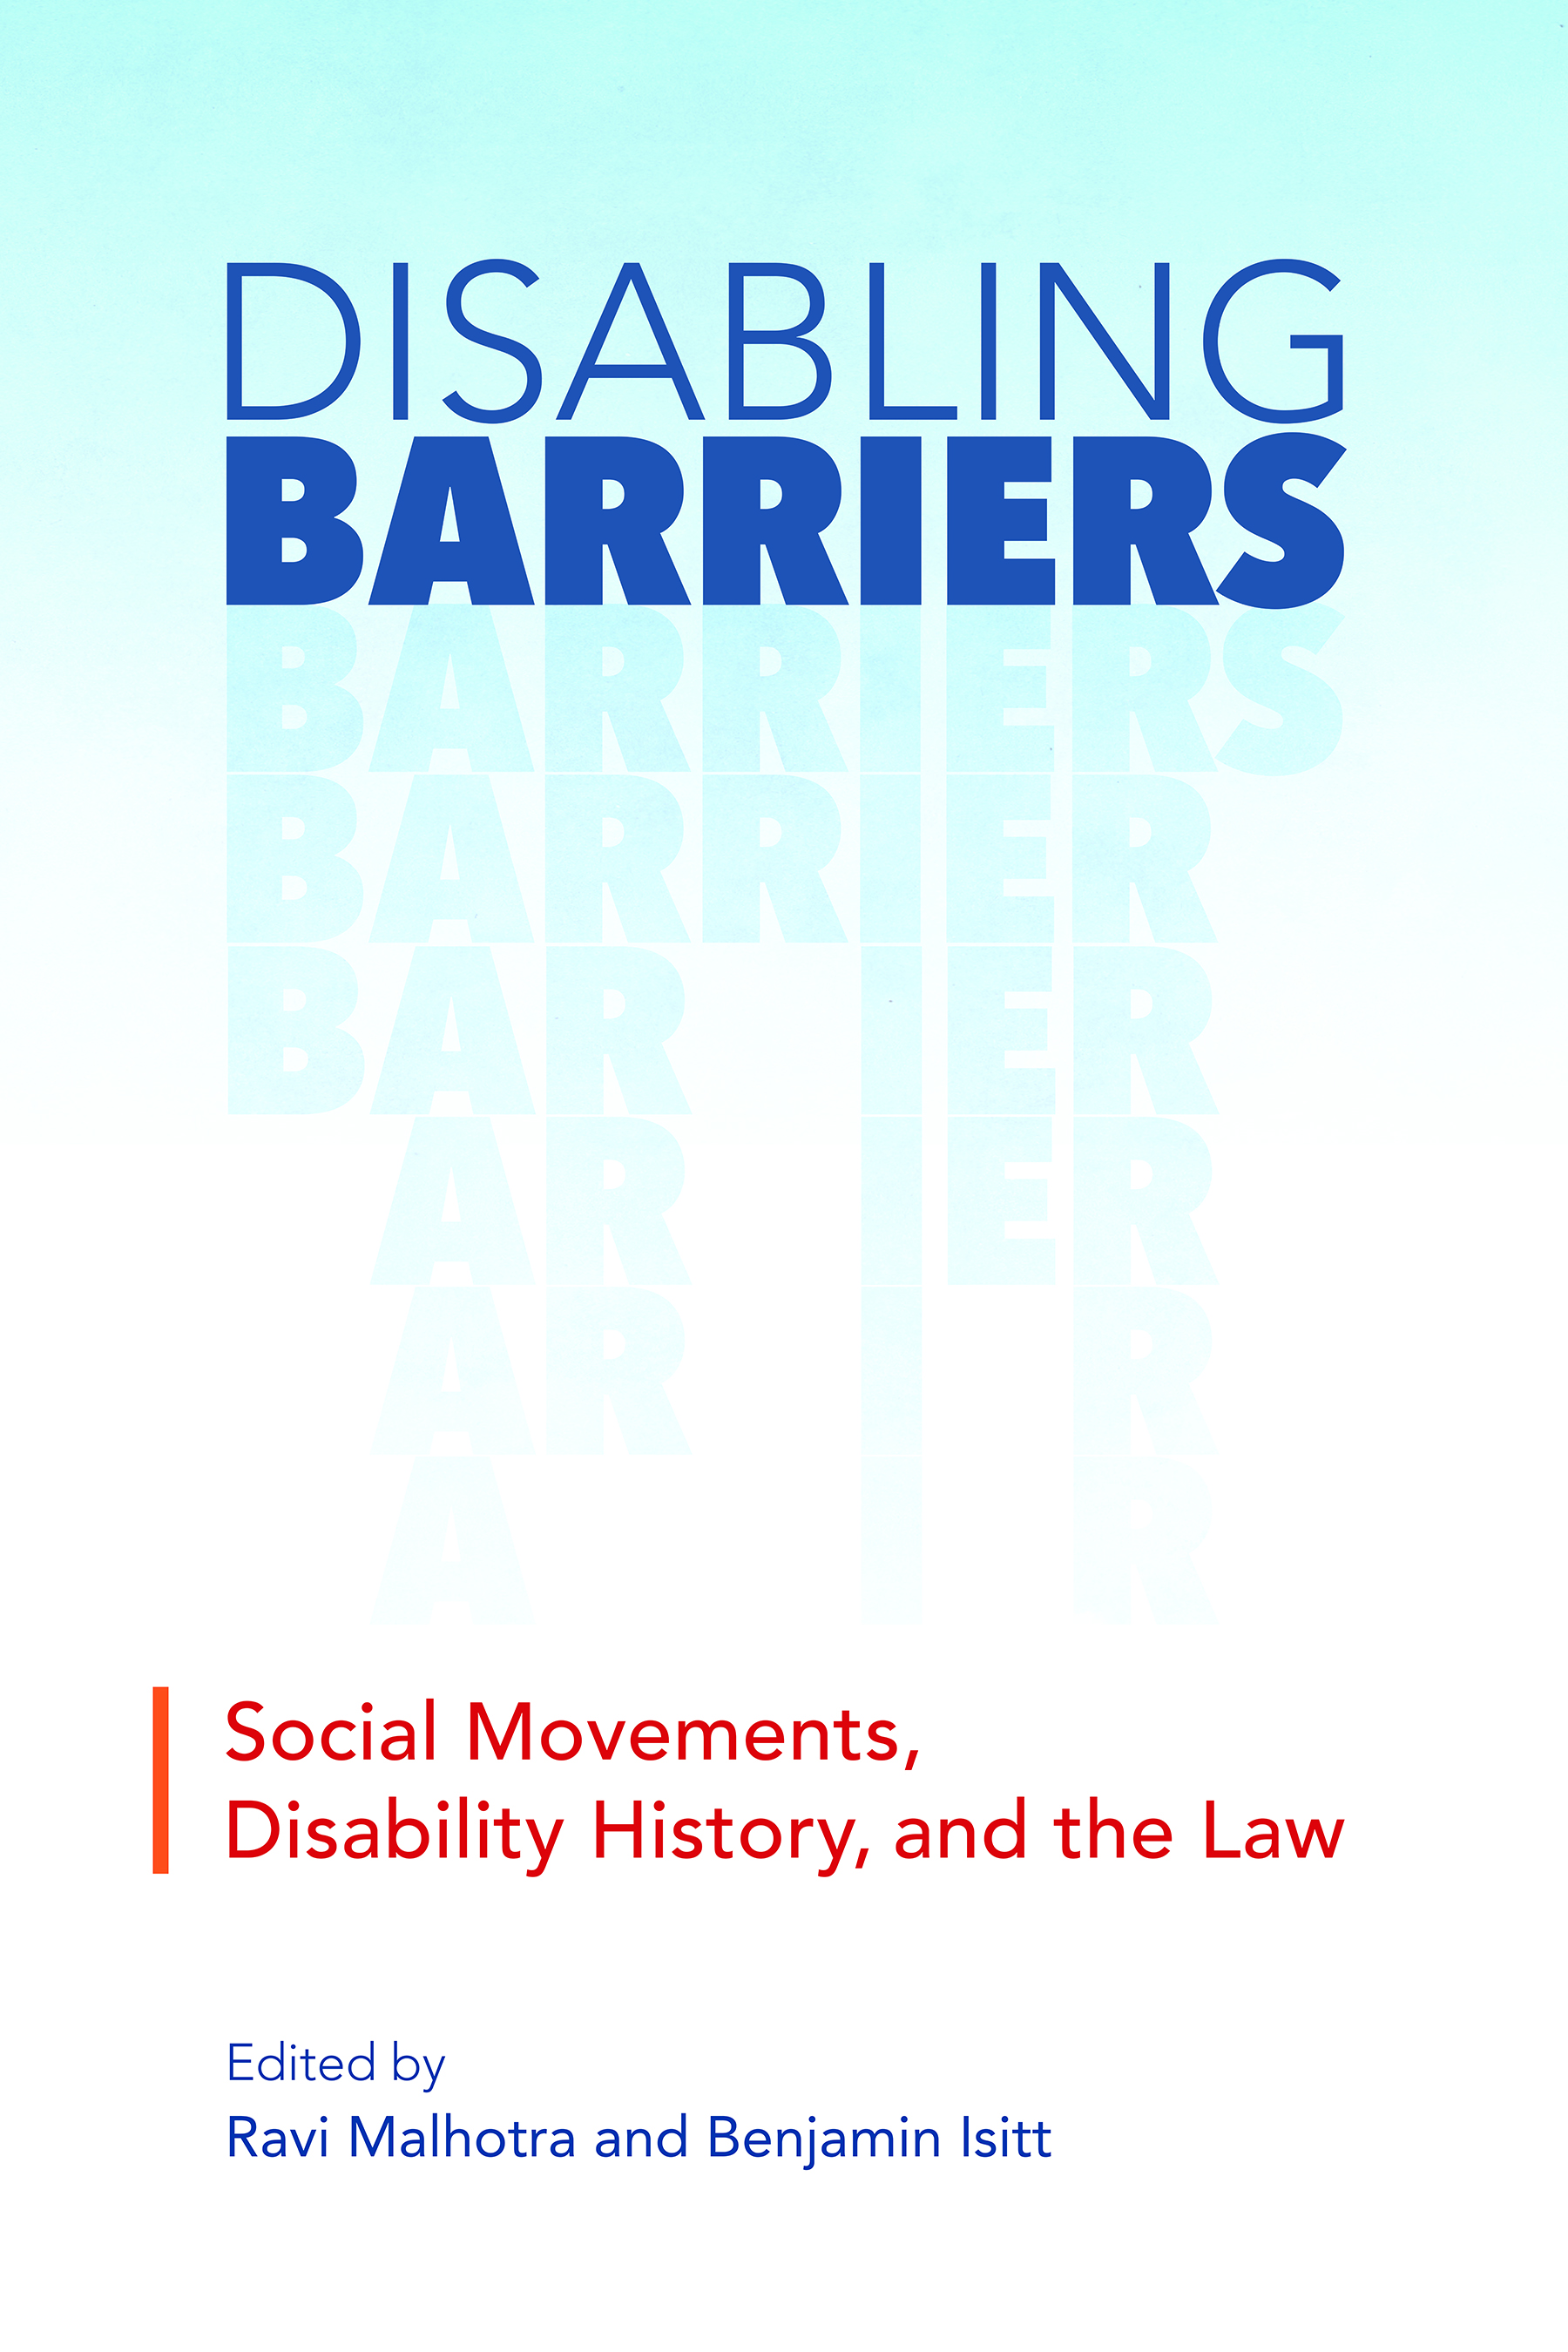 Livre - Disabling Barriers: Social Movements, Disability History and the Law